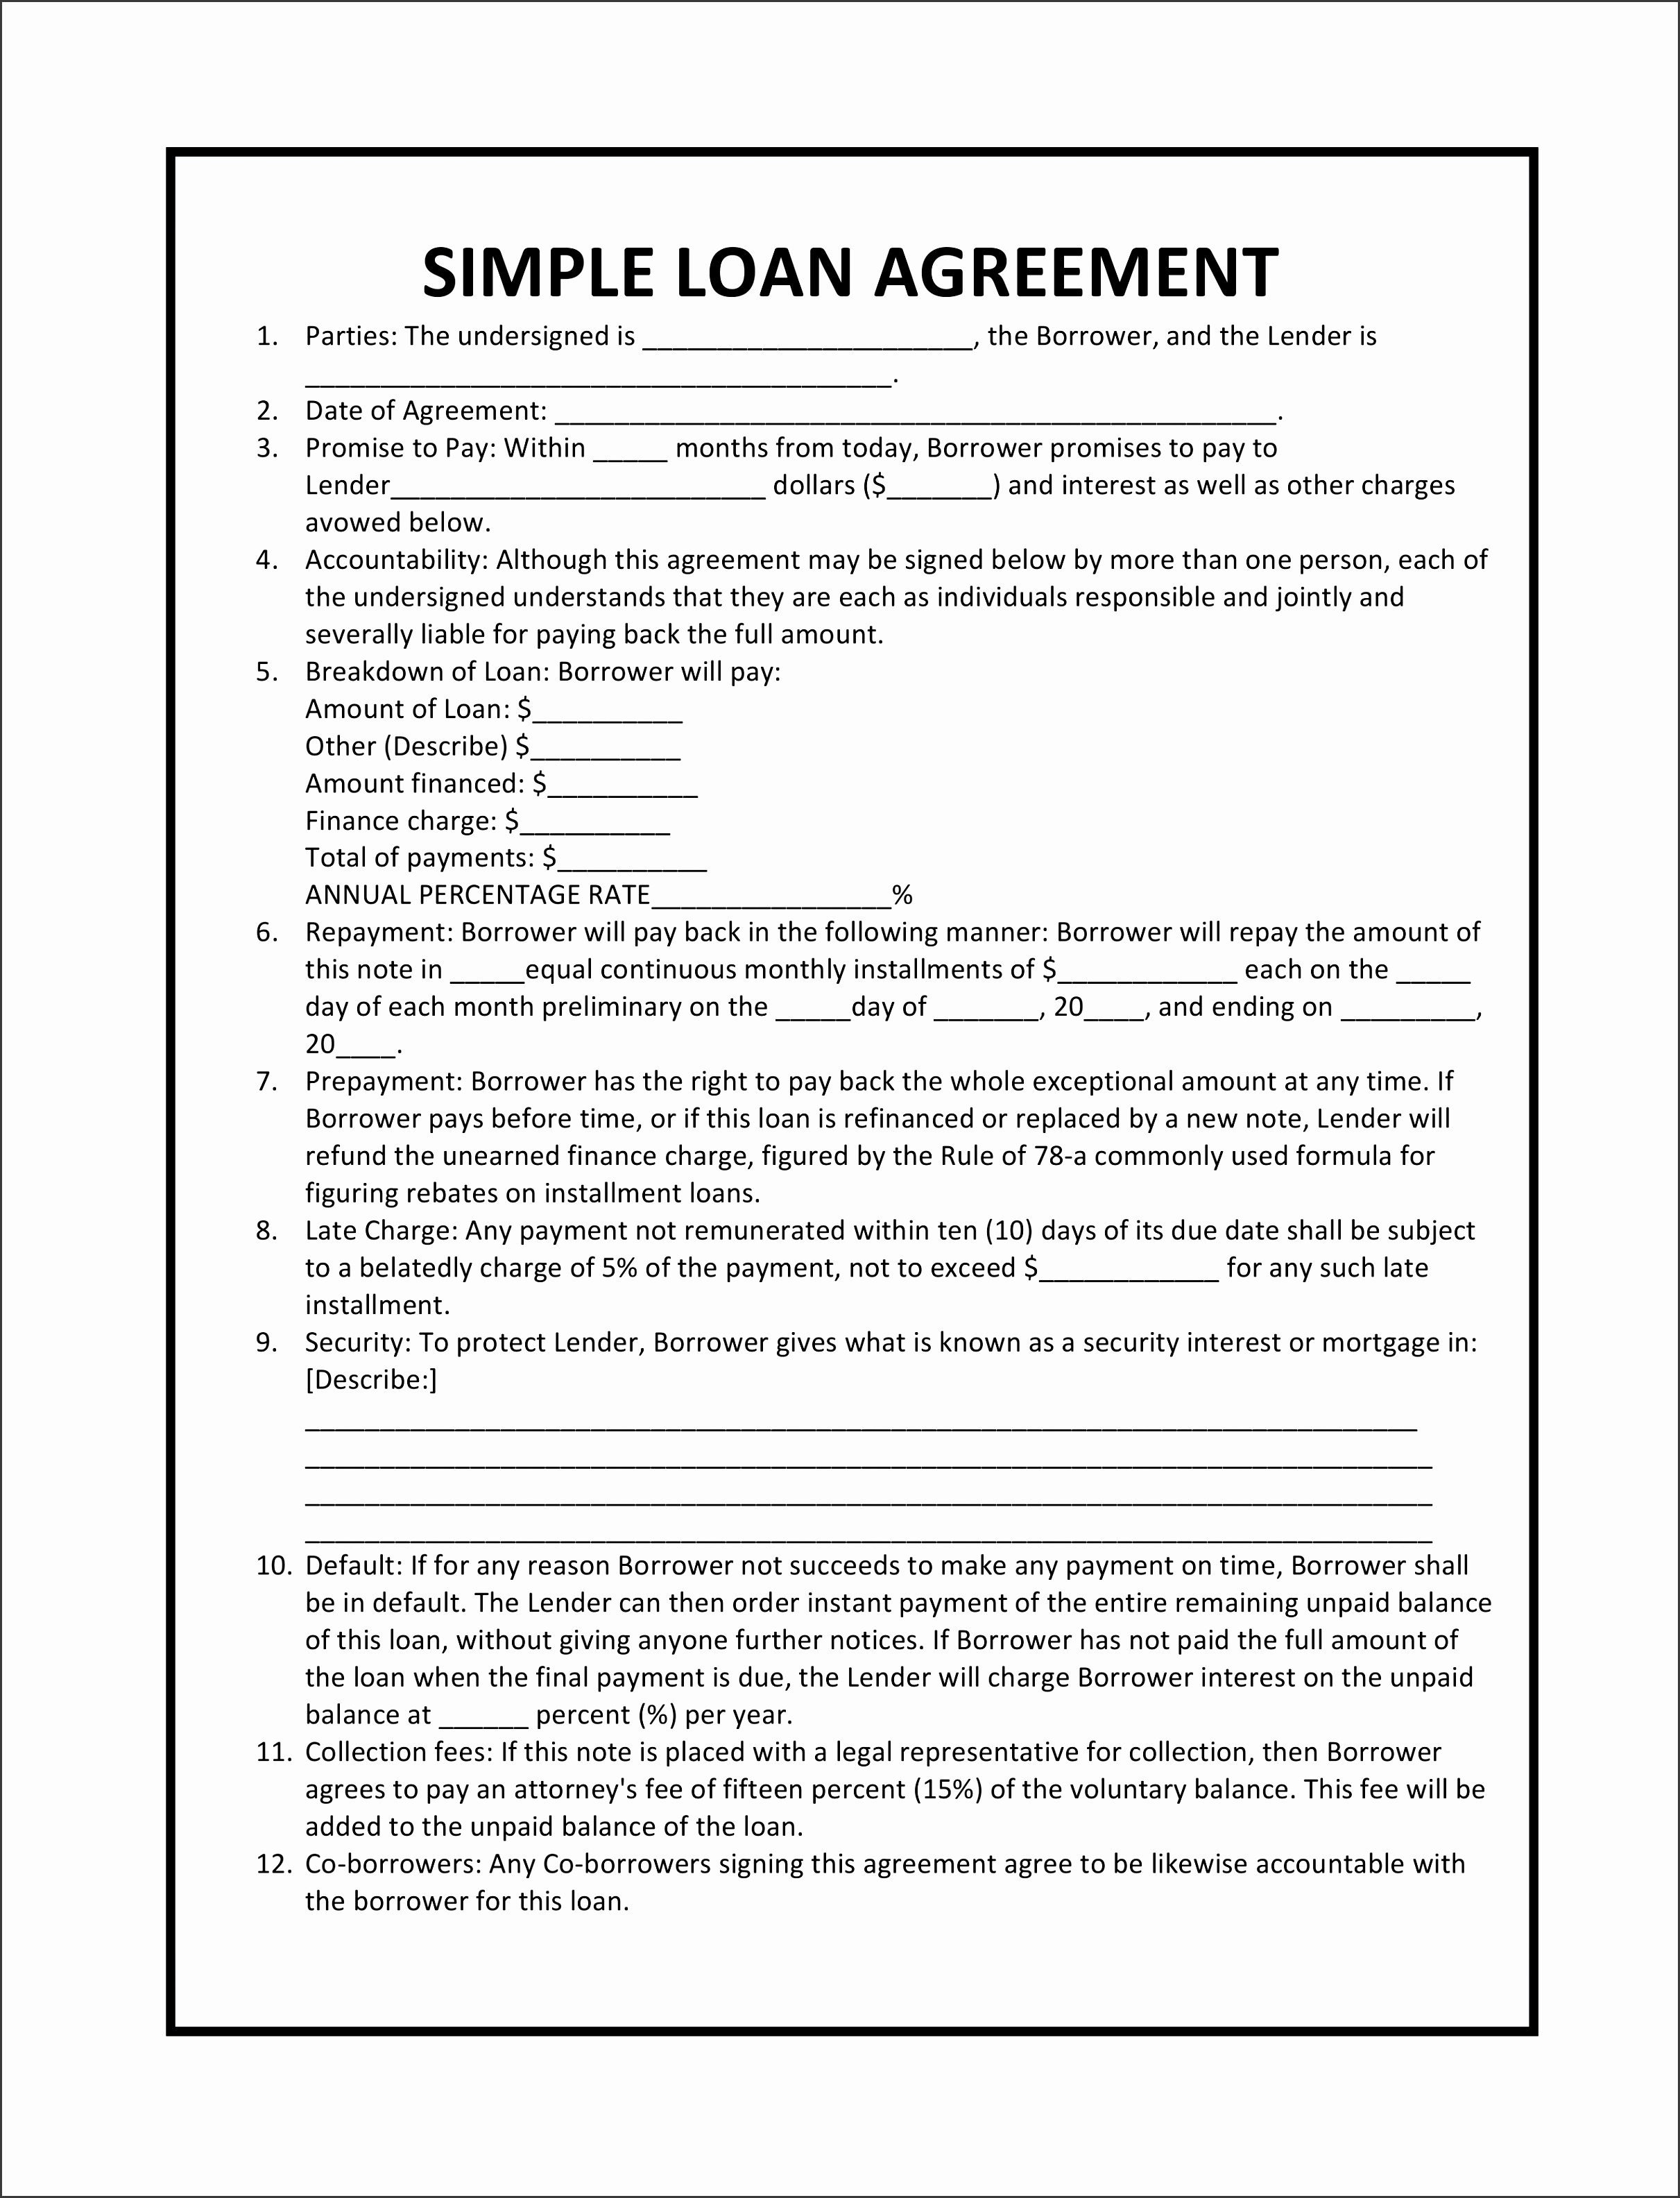 free loan document template australia